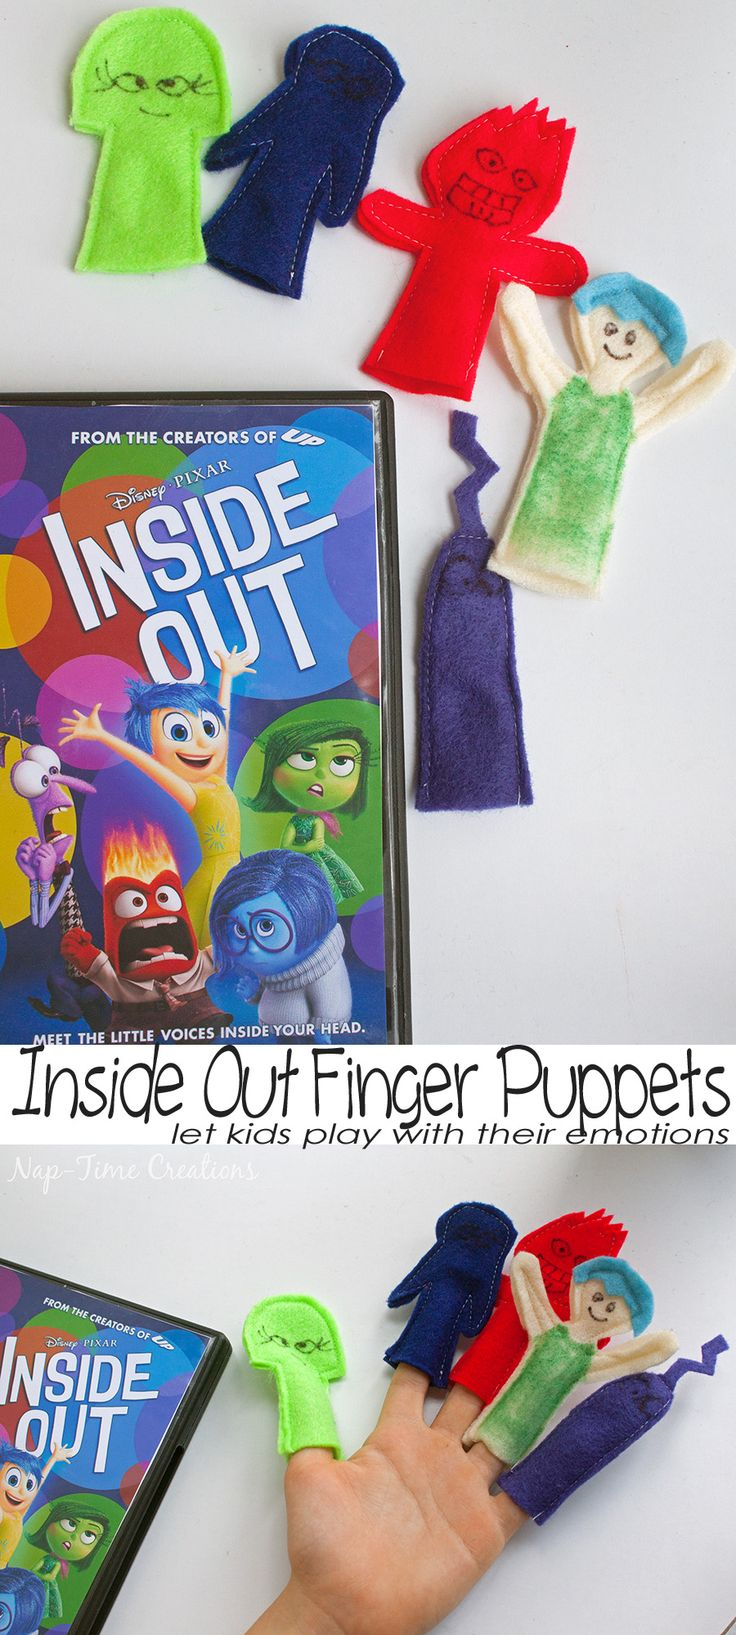 Inside Out Finger Puppets and DVD release #InsideOutEmotions From Nap-Time Creations #ad